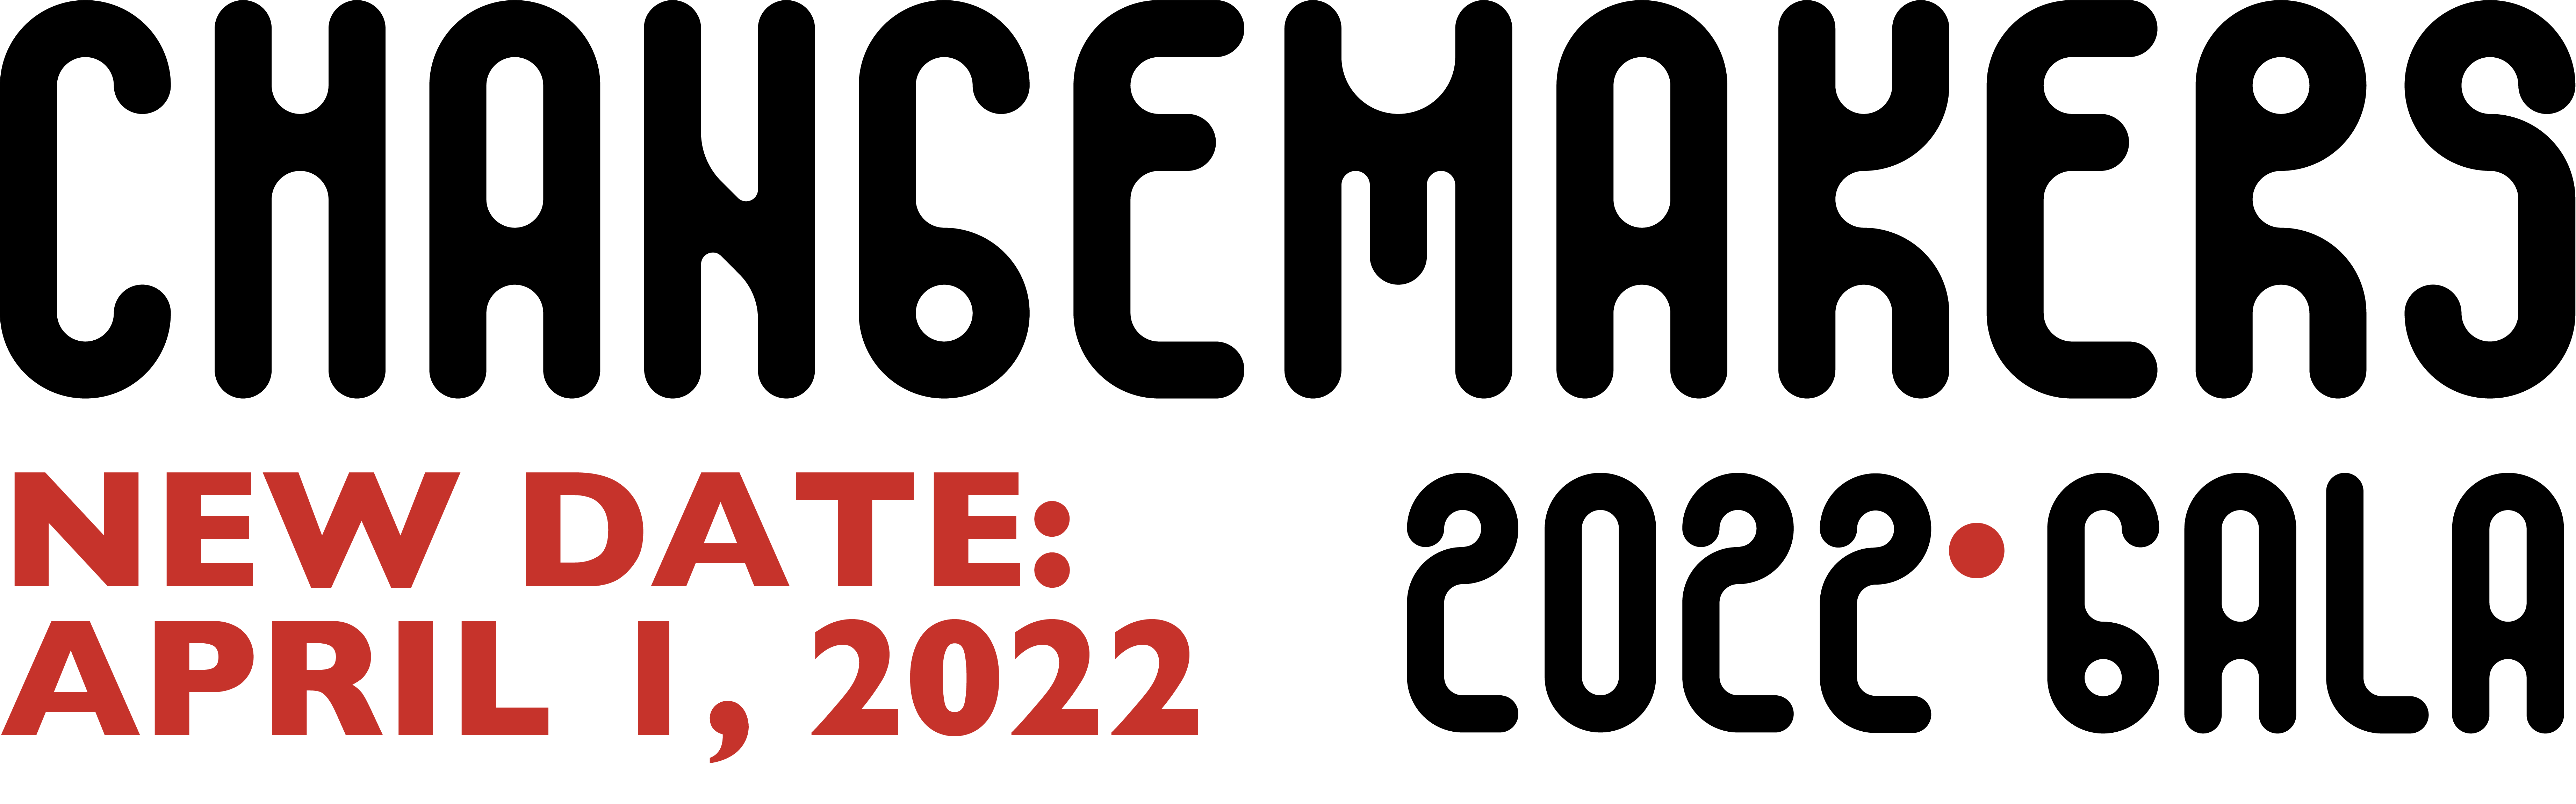 changemakers-2022-gala-title-treatment-with-date-1